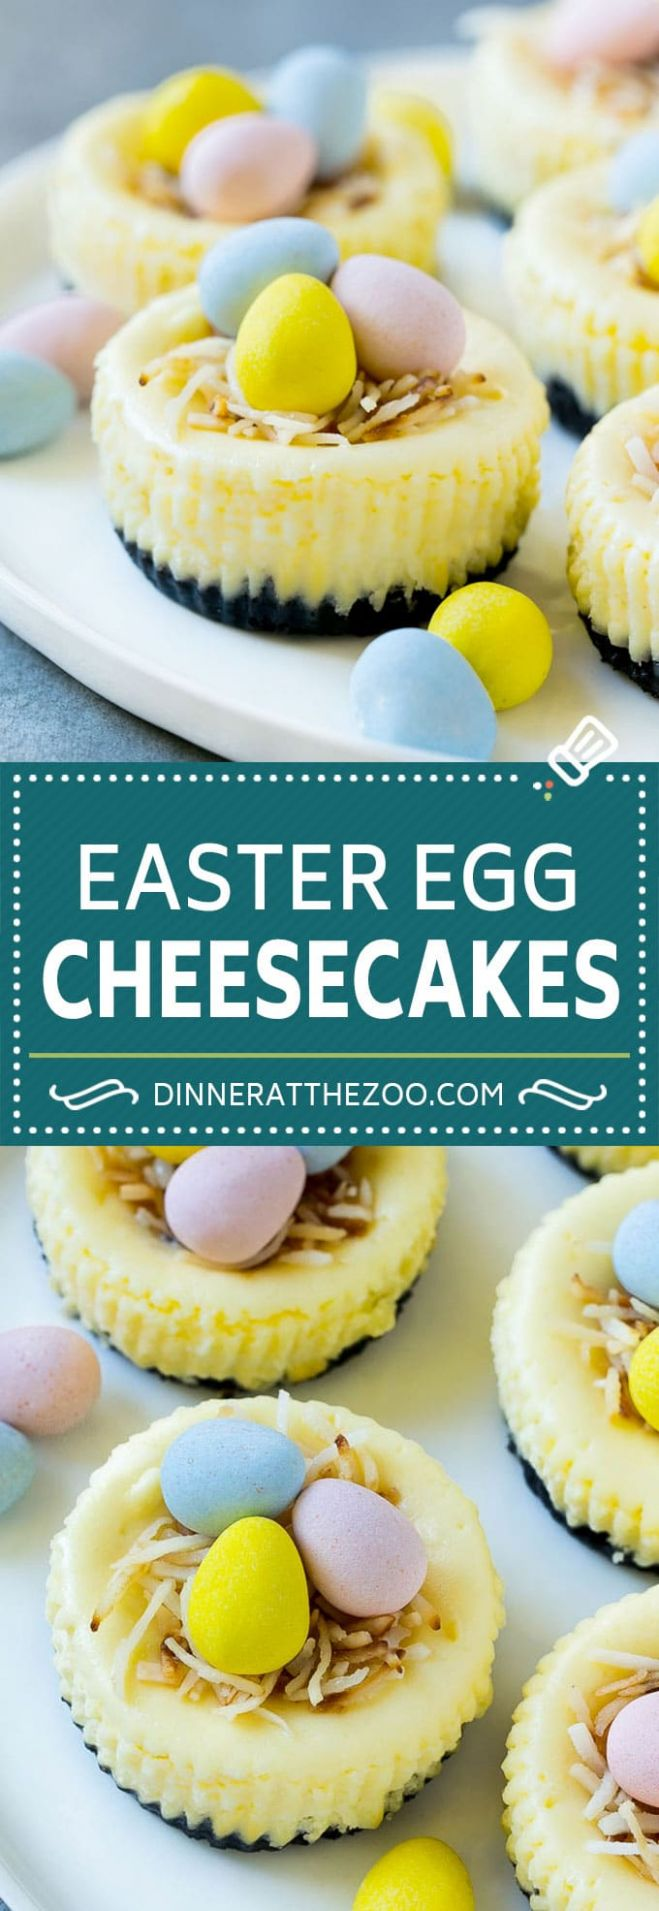 9 Festive Easter Dessert Recipes - Dinner at the Zoo